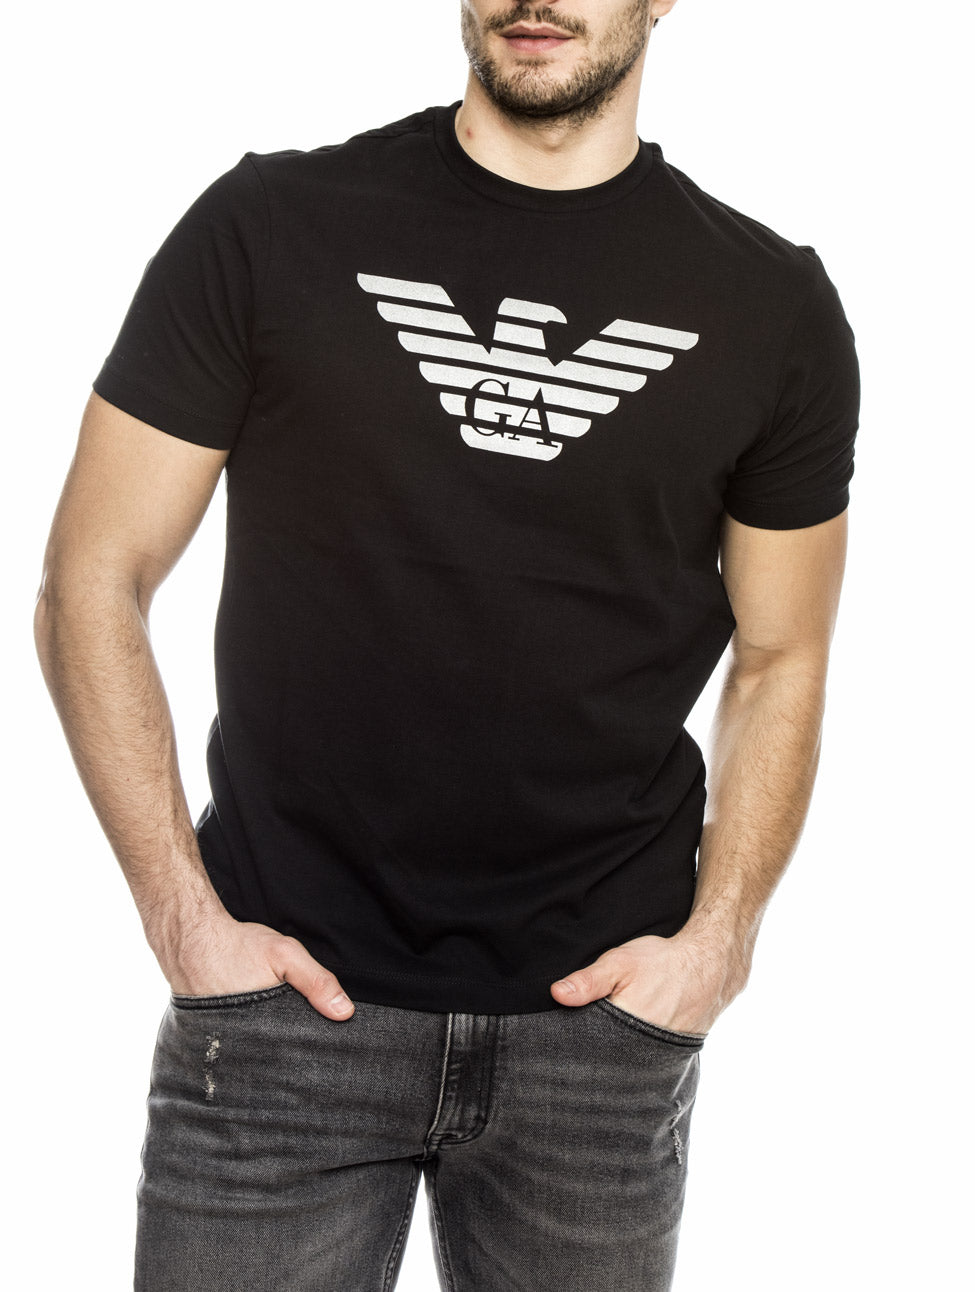 MAN JERSEY T-SHIRT IN BLACK